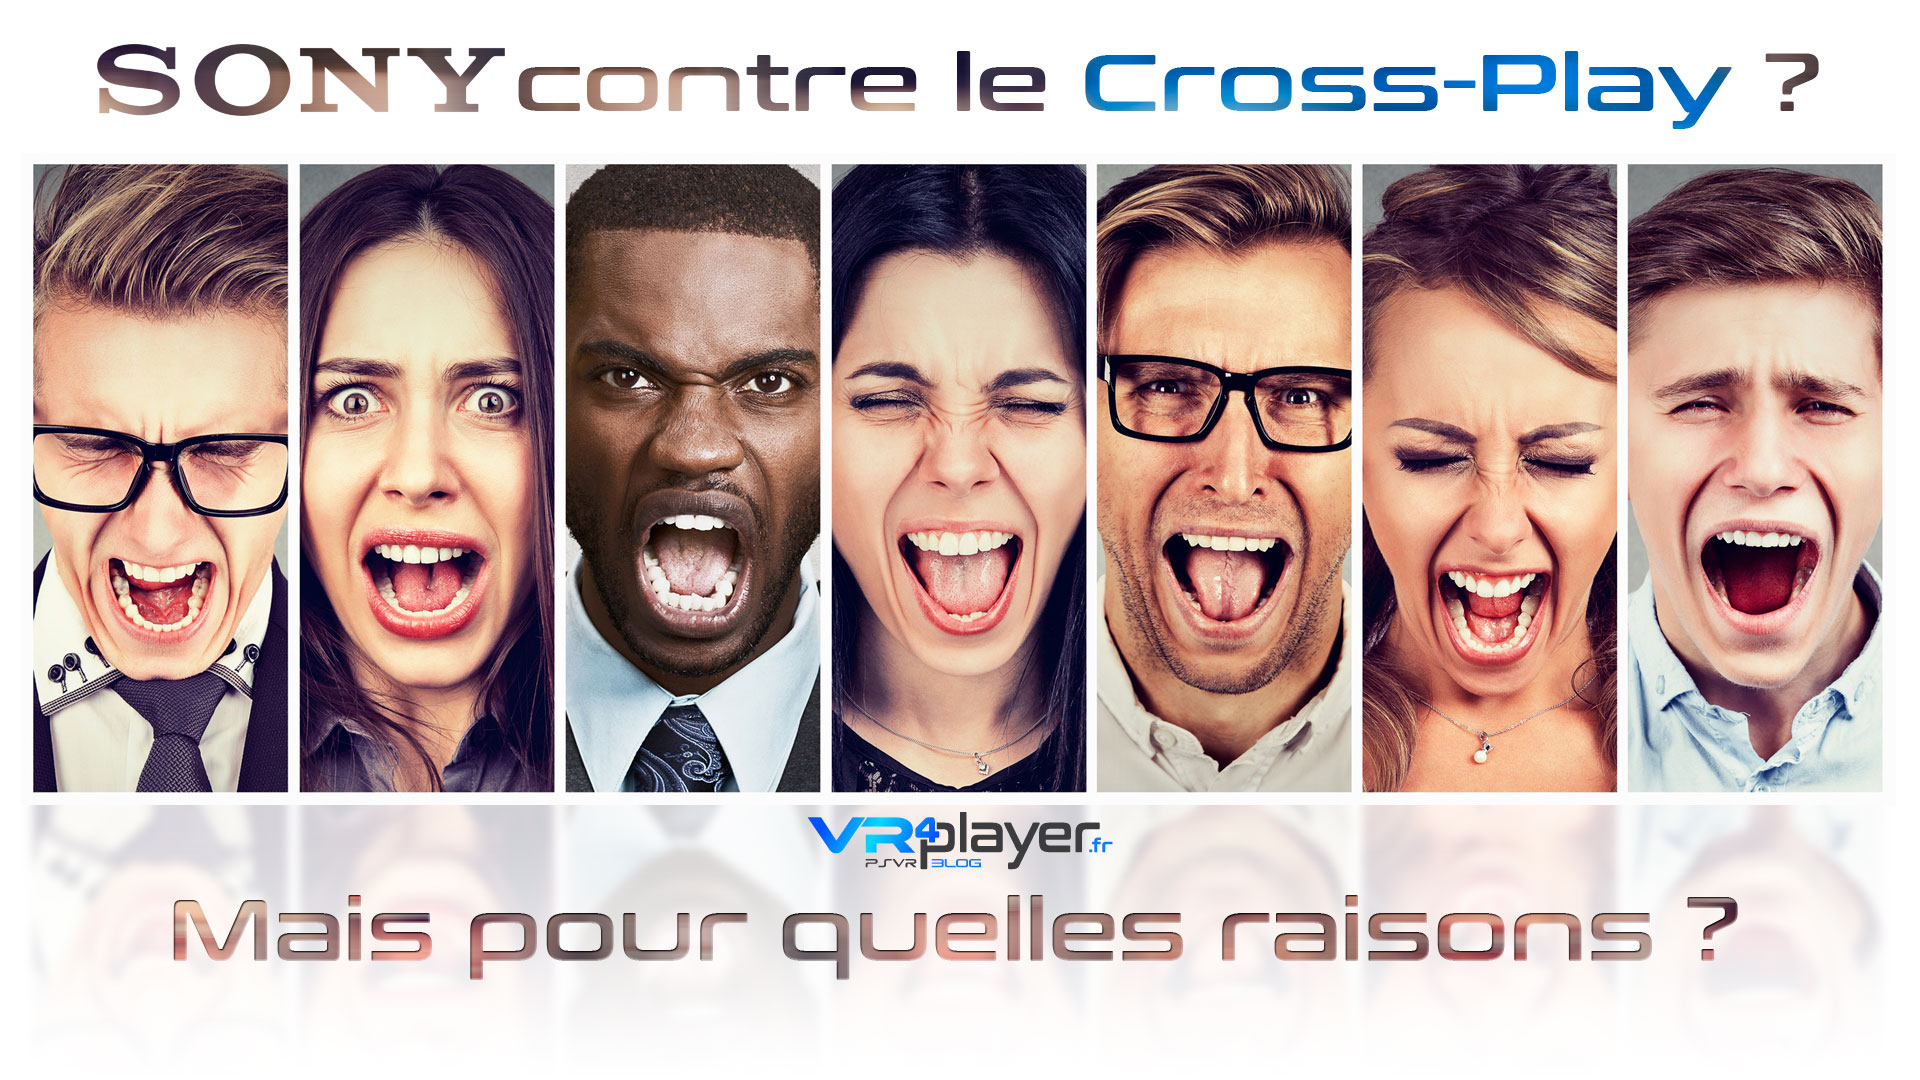 Sony contre le Cross-Play Les Raisons VR4Player.fr